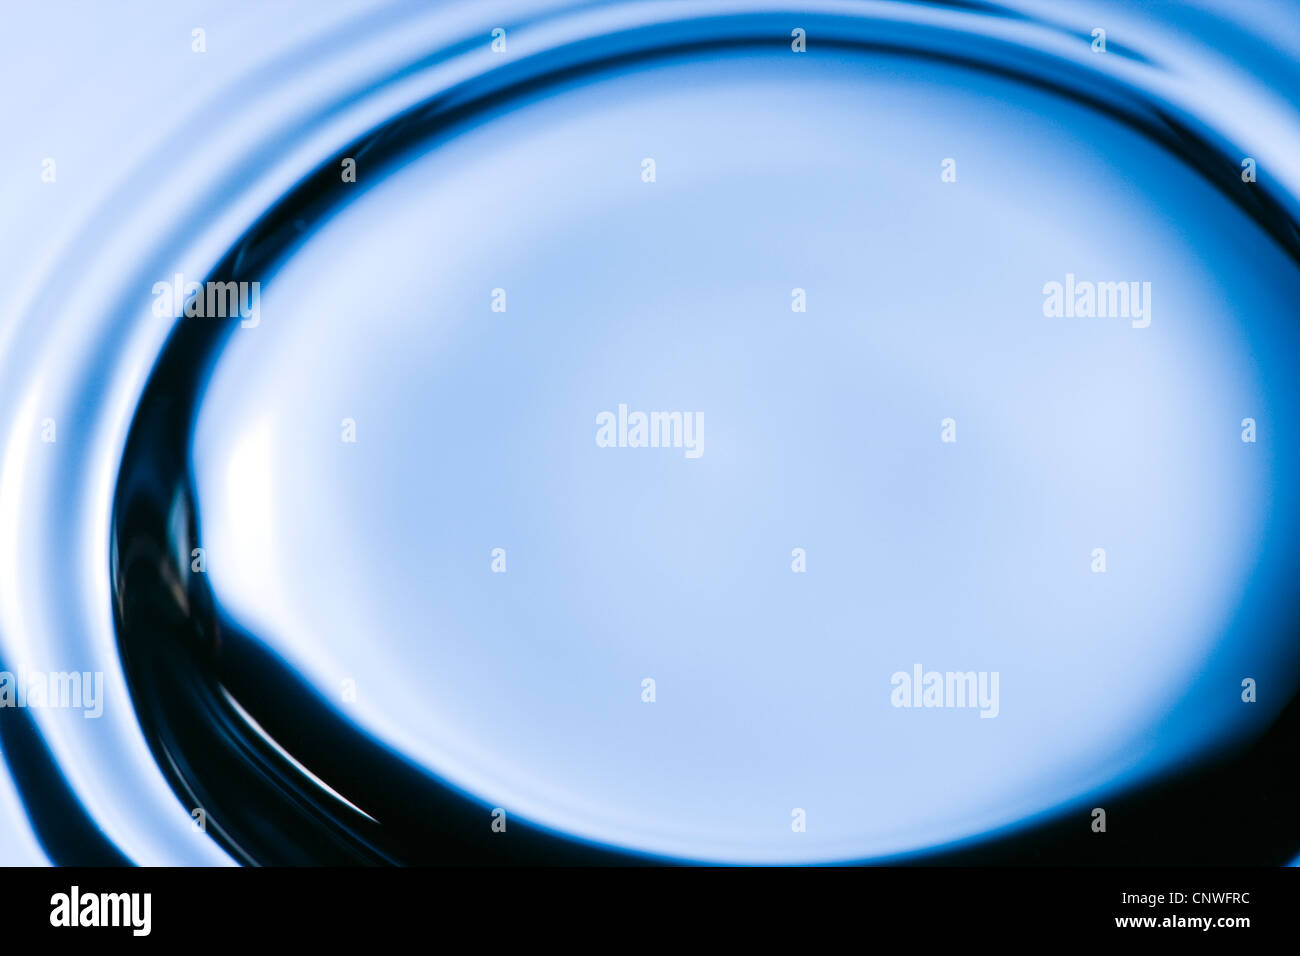 Ripples on water. - Stock Image